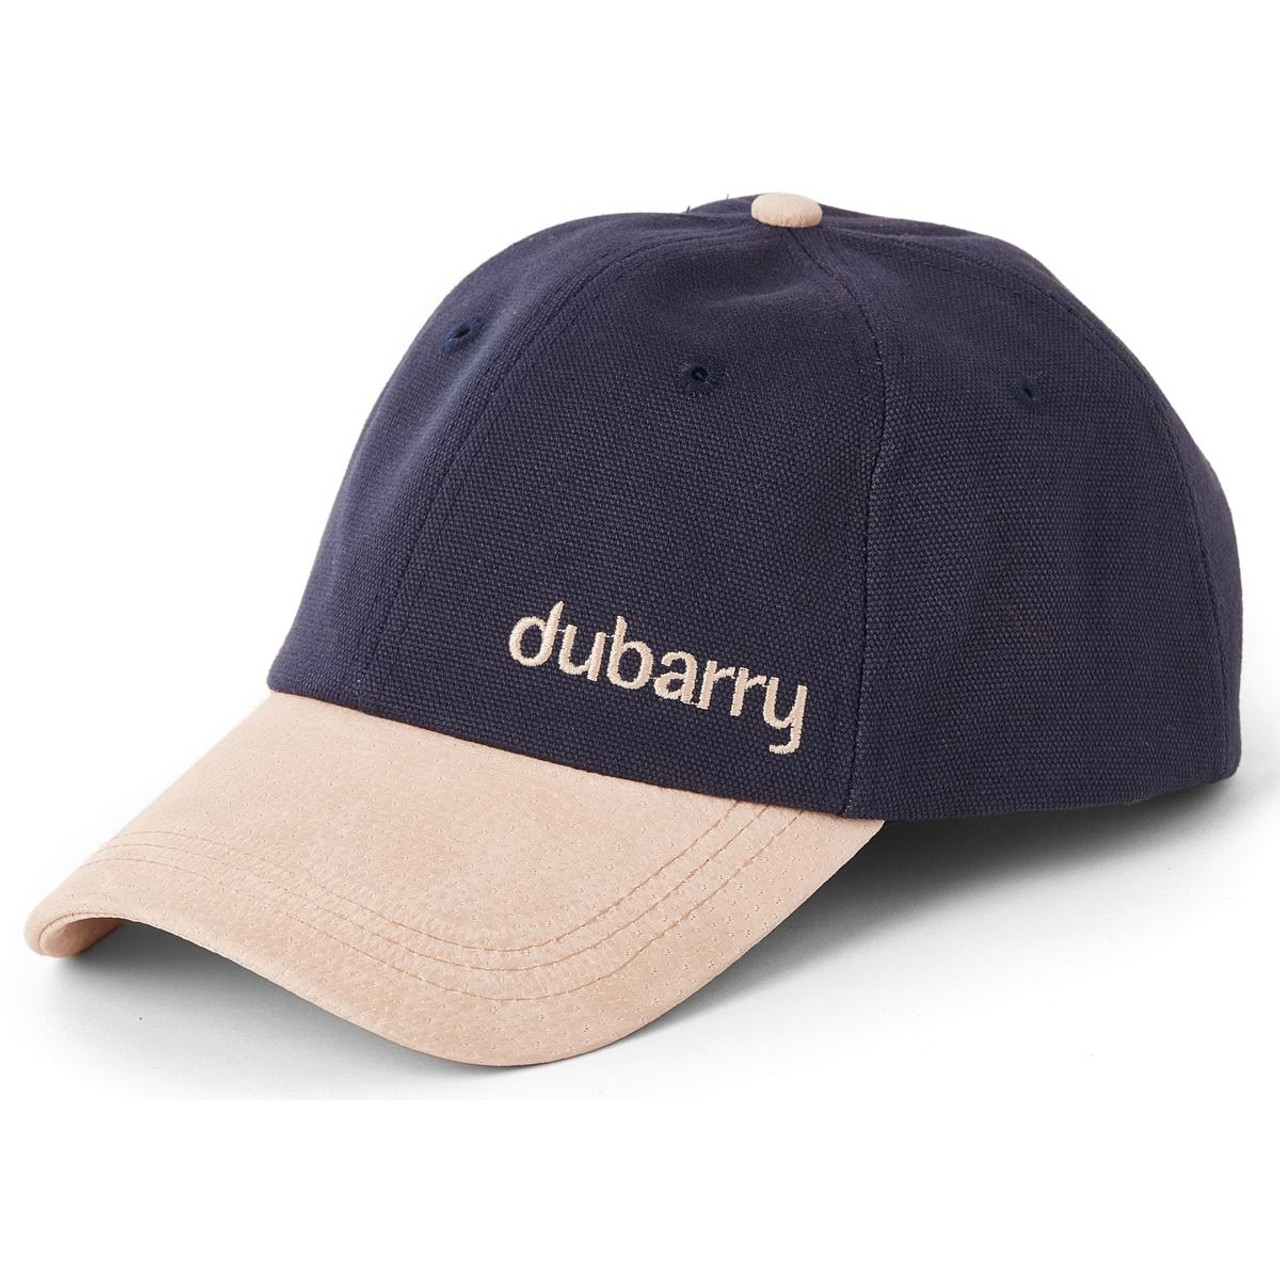 Dubarry Causeway Cap in Navy